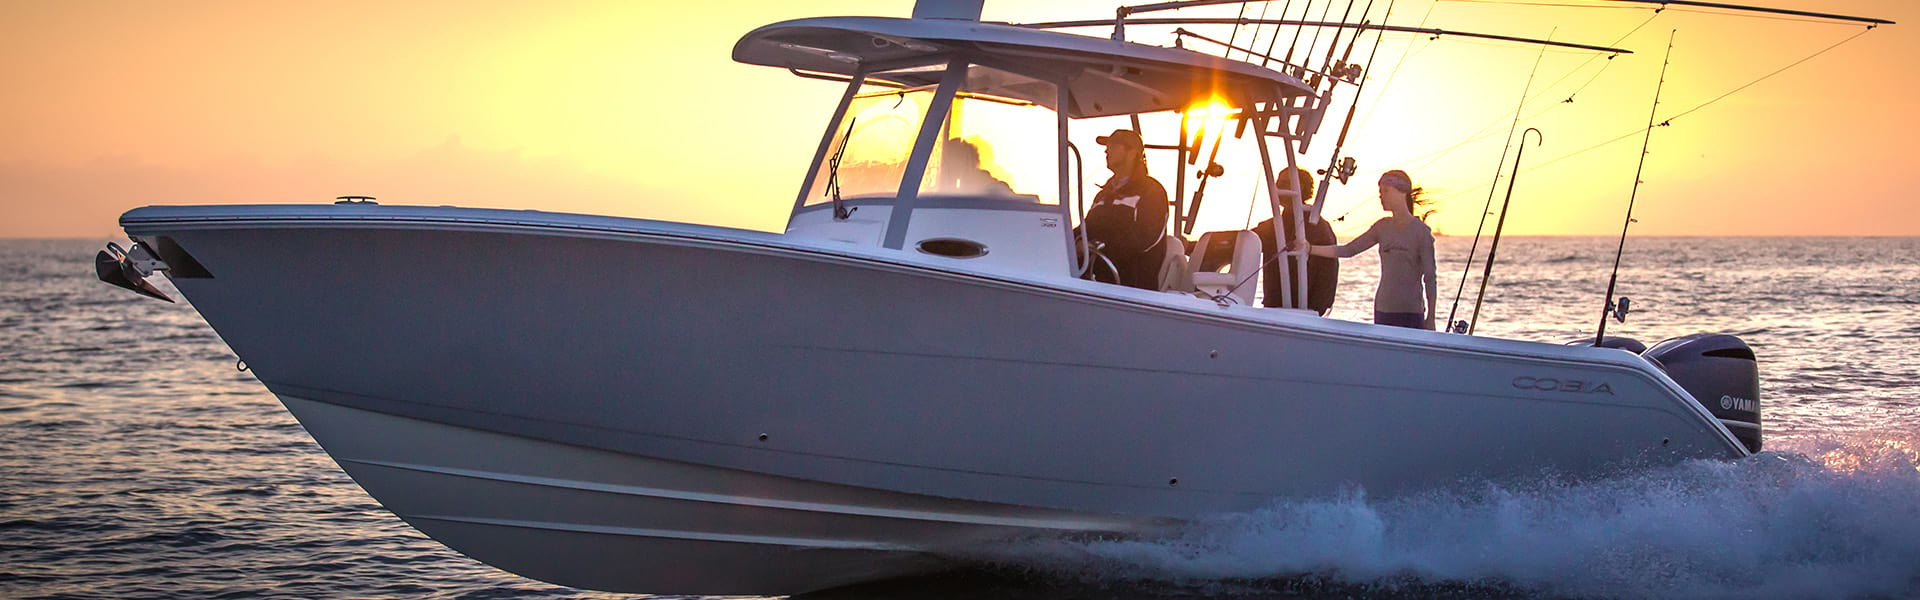 Cobia-sunset-marquee-1920x600.jpg